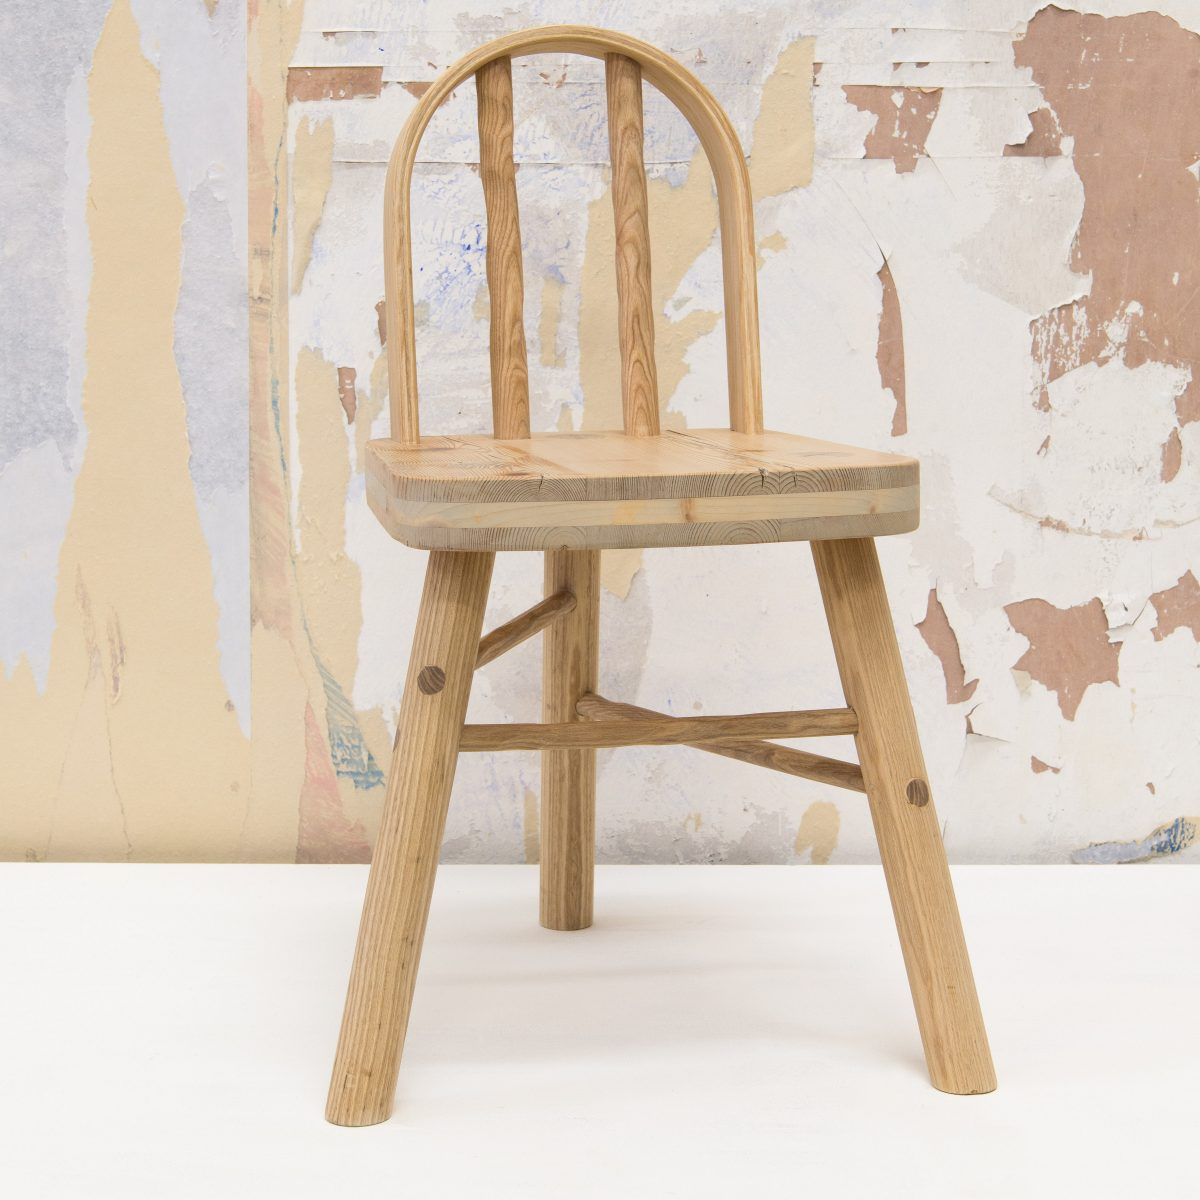 Jan Hendzel Studio lentini chair-4